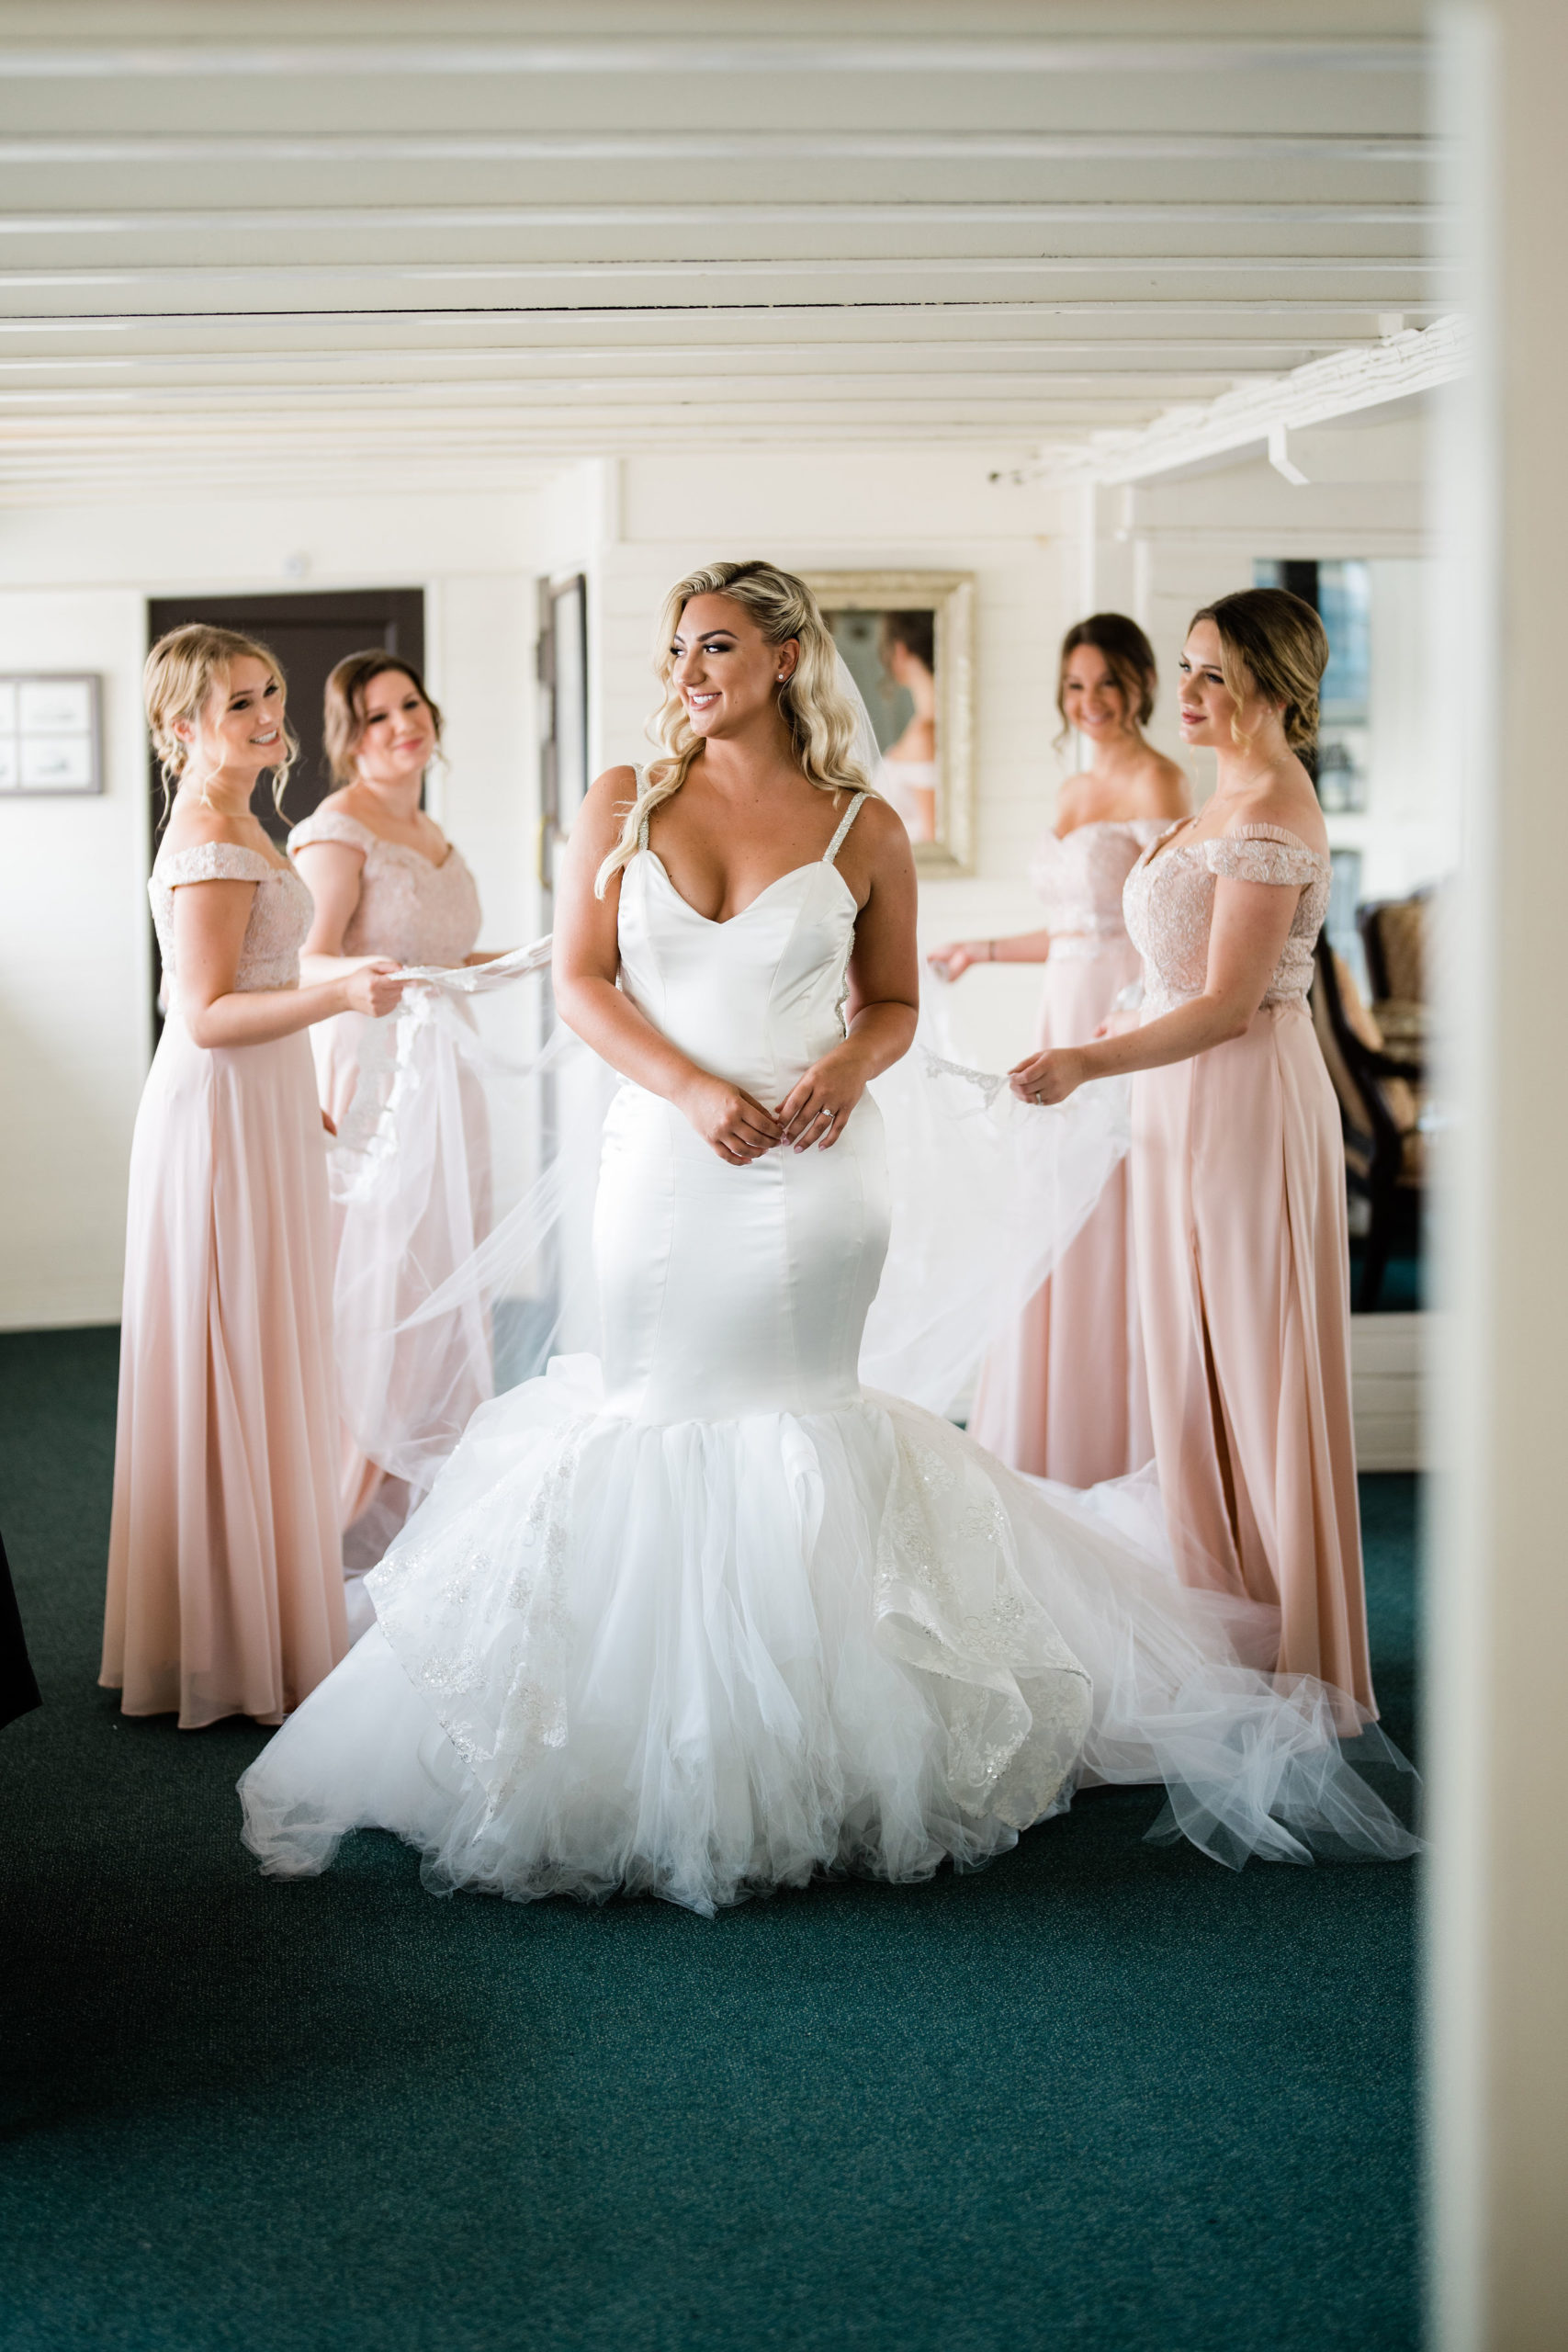 white wedding dress and brides before ceremony